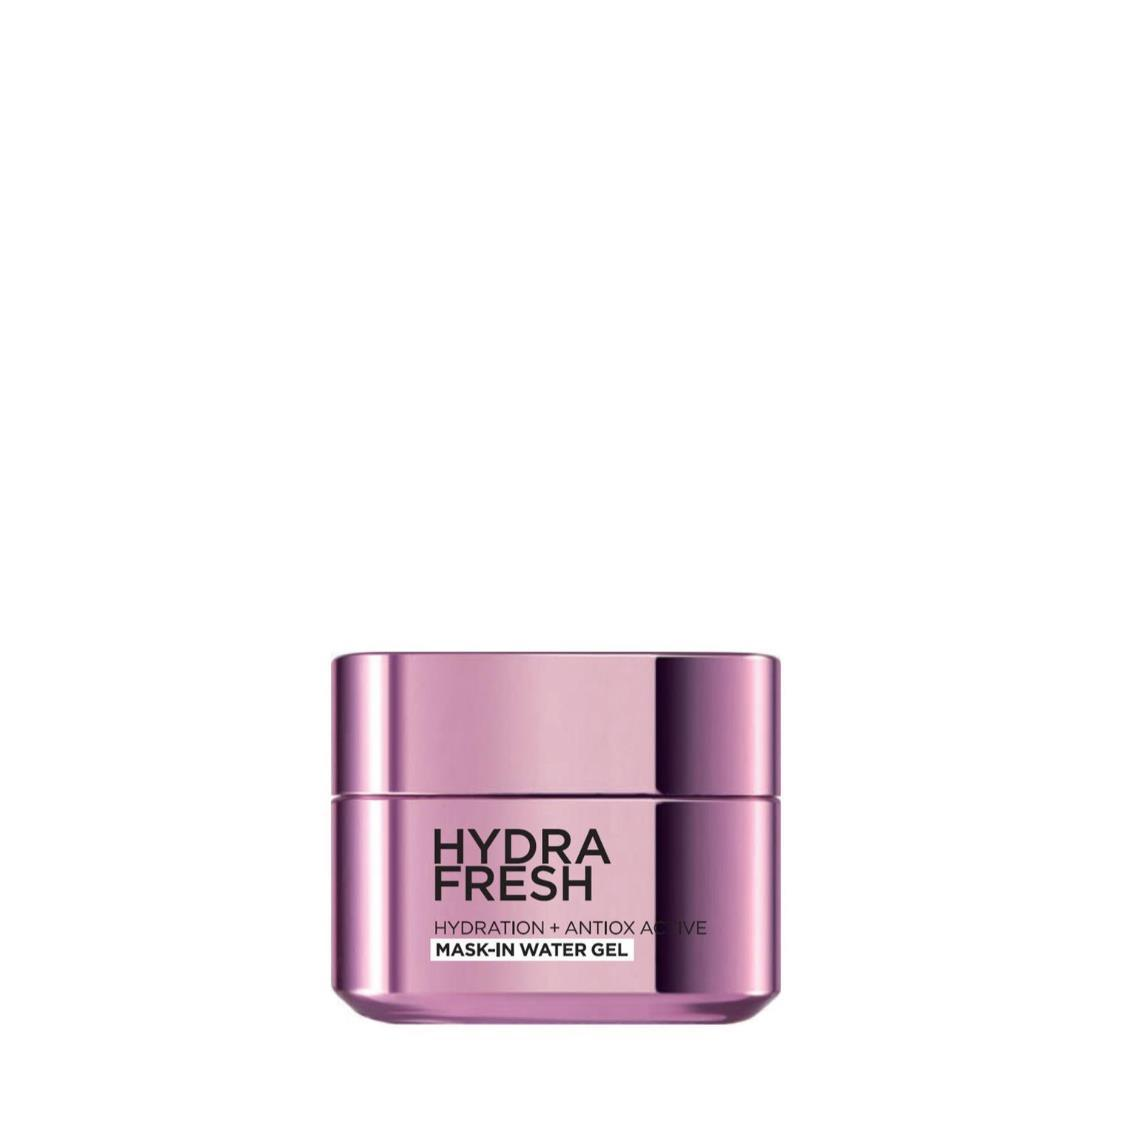 Hydrafresh Pink Mask In Water Gel 50ml